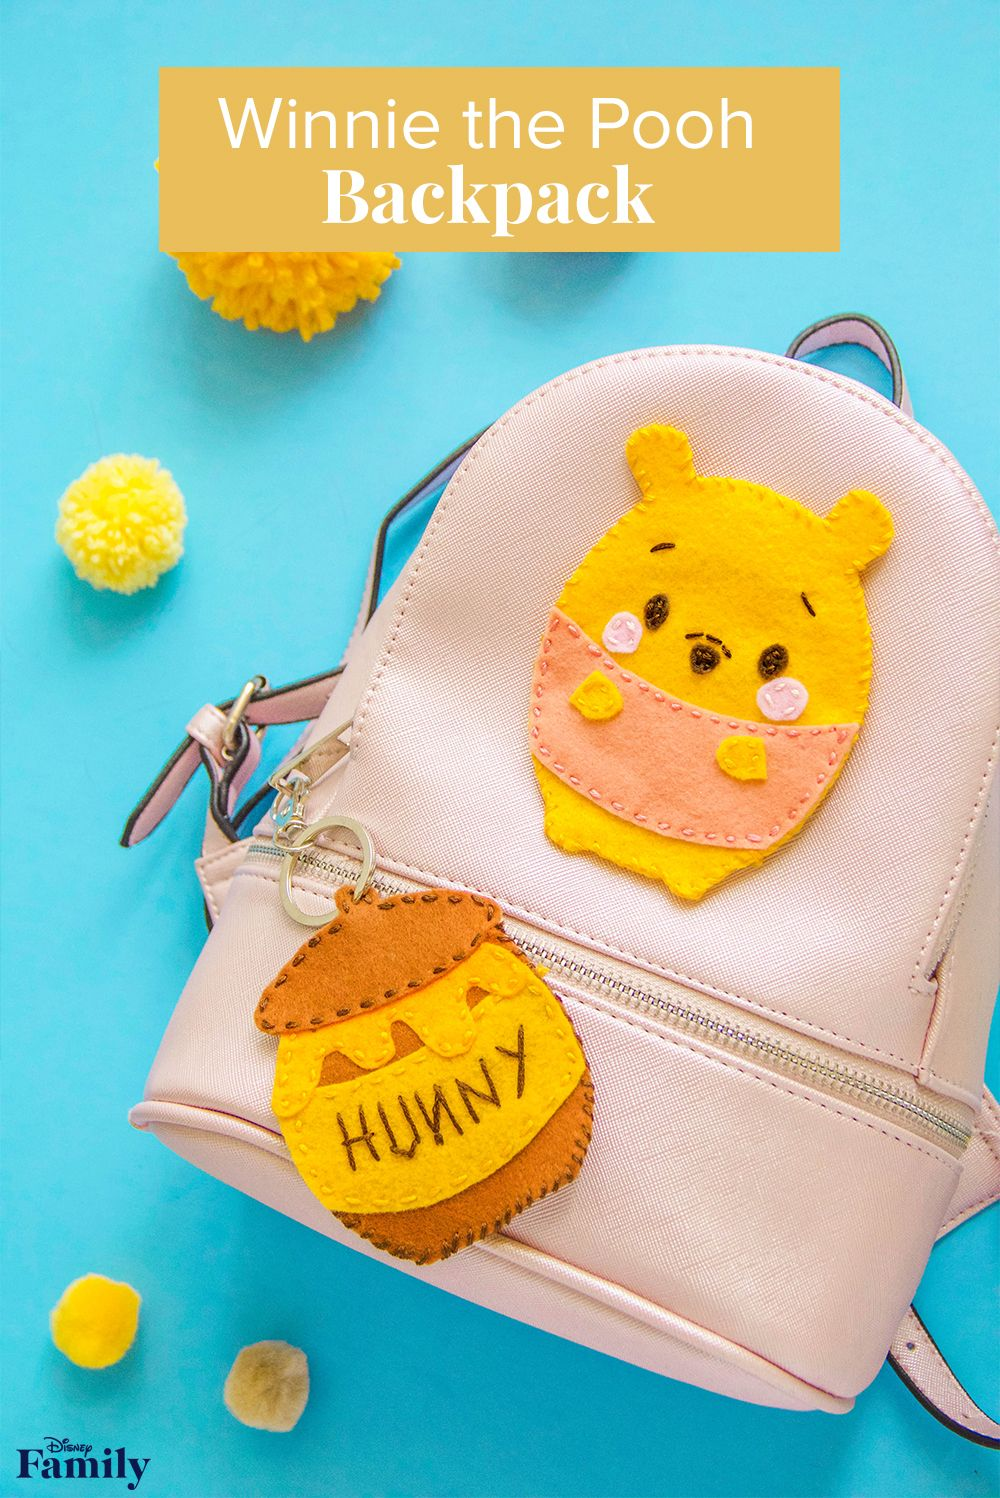 """Here's a little something sweet to add flair to any backpack. All you need are a few simple materials to create a patch inspired by the adorable Winnie the Pooh Ufufy. Add it to your kiddo's bag, and accessorize with a """"hunny"""" pot keychain charm. Now your little one can take that silly old bear with them everywhere they go! Click thru for the DIY Winnie the Pooh Backpack tutorial."""